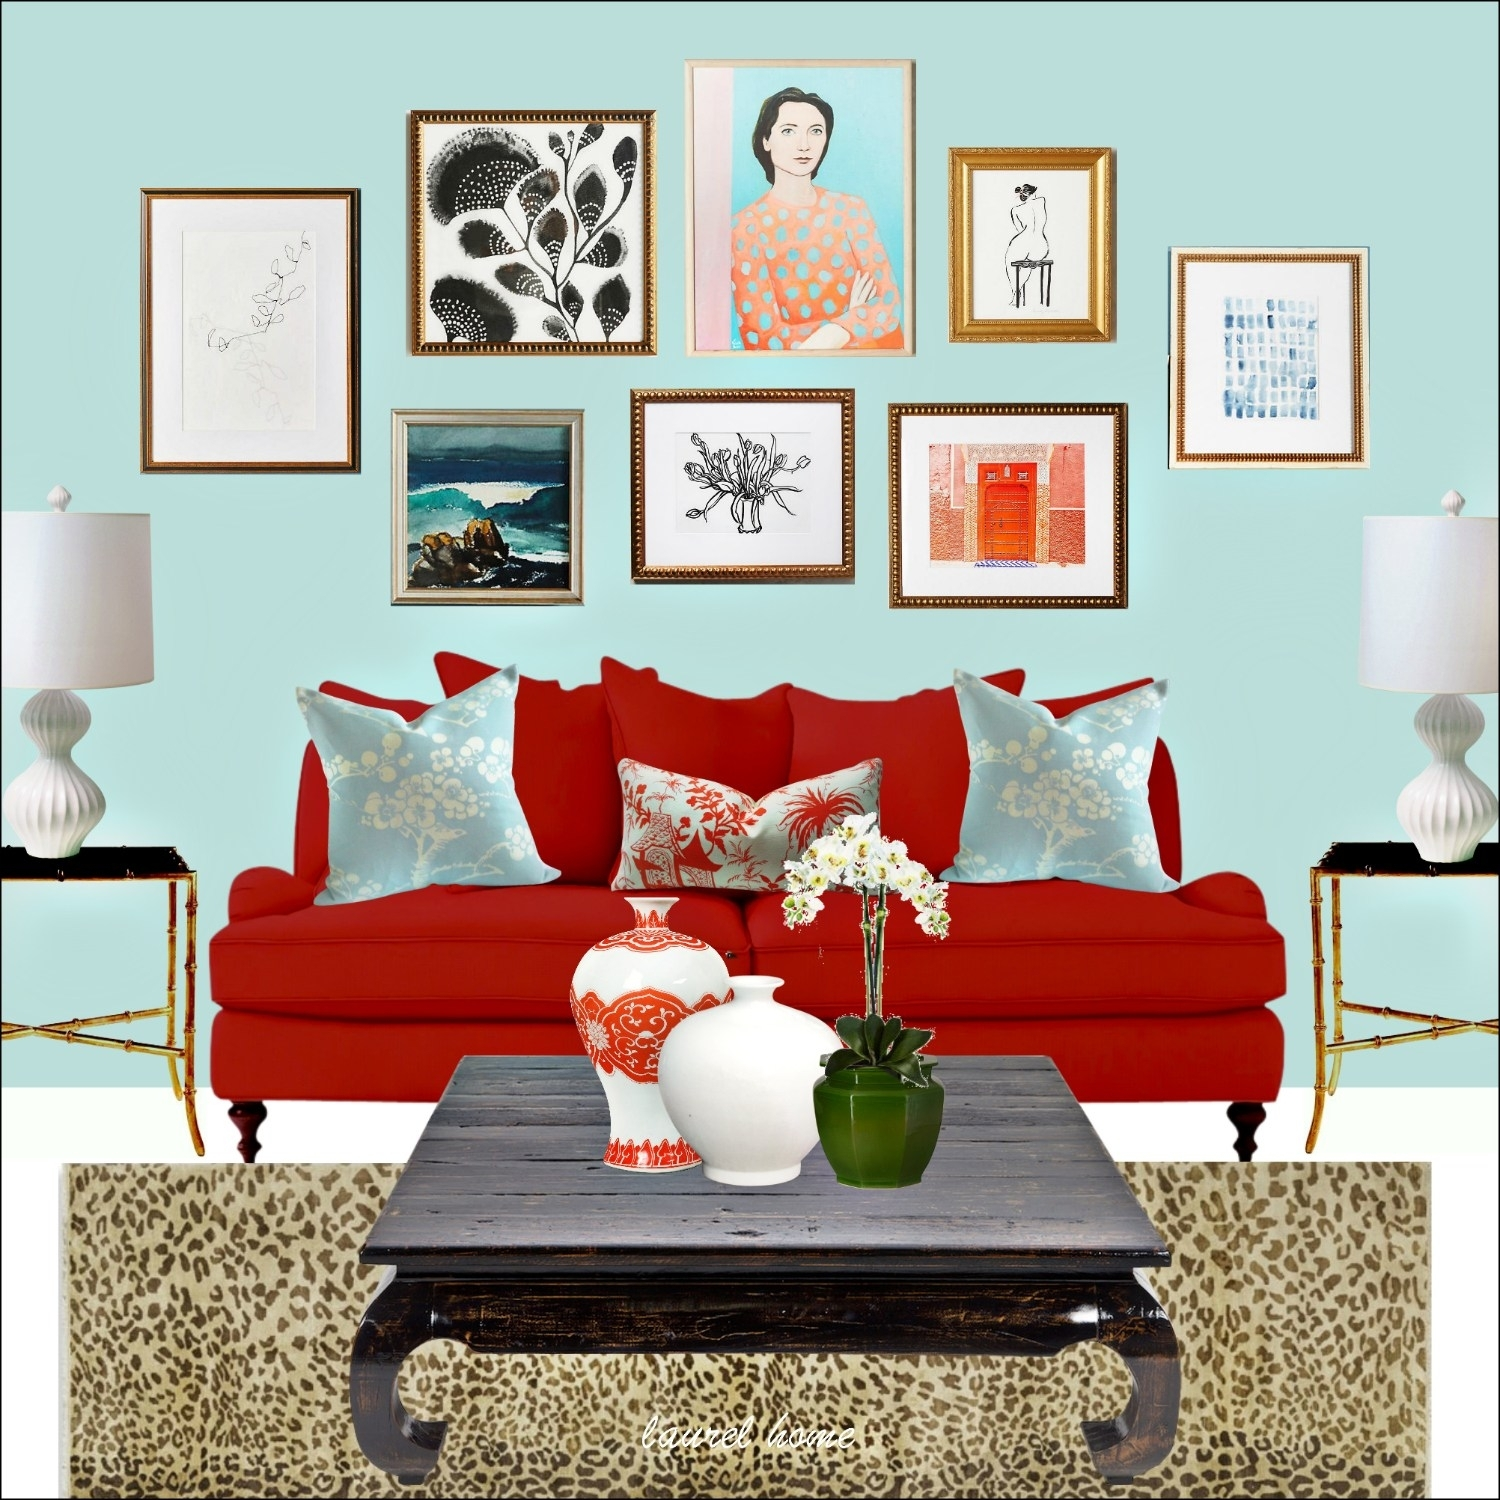 Anthropologie Art Wall With Artfully Walls Art And Red Sofa And In Most Recent Artfully Walls (View 14 of 15)